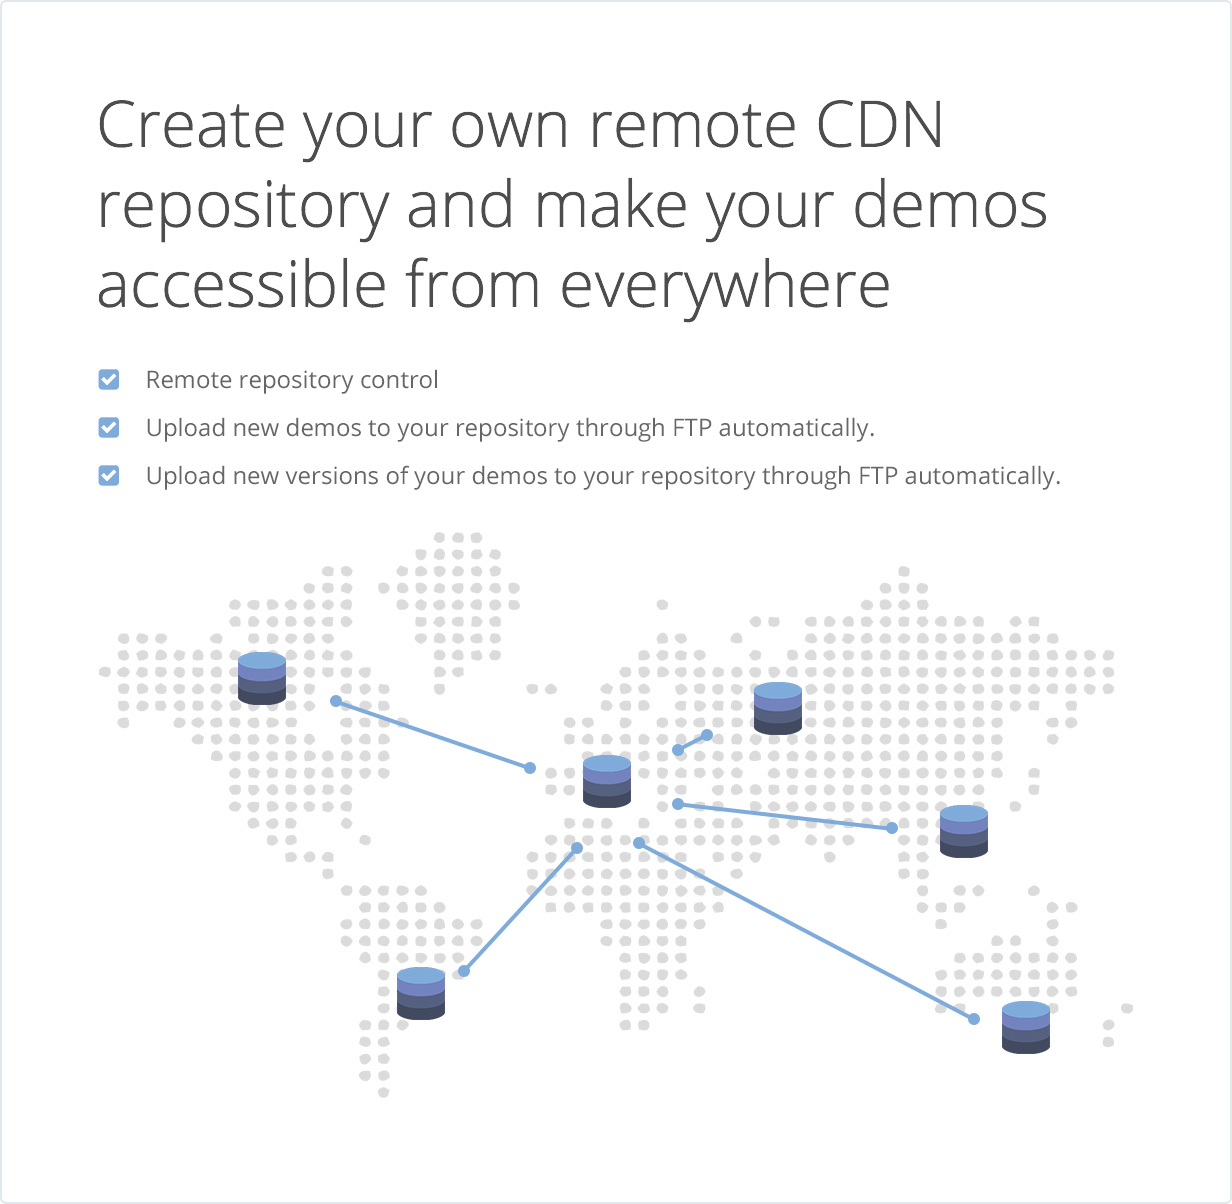 Create your own remote CDN repository and make your demos accessible from everywhere.